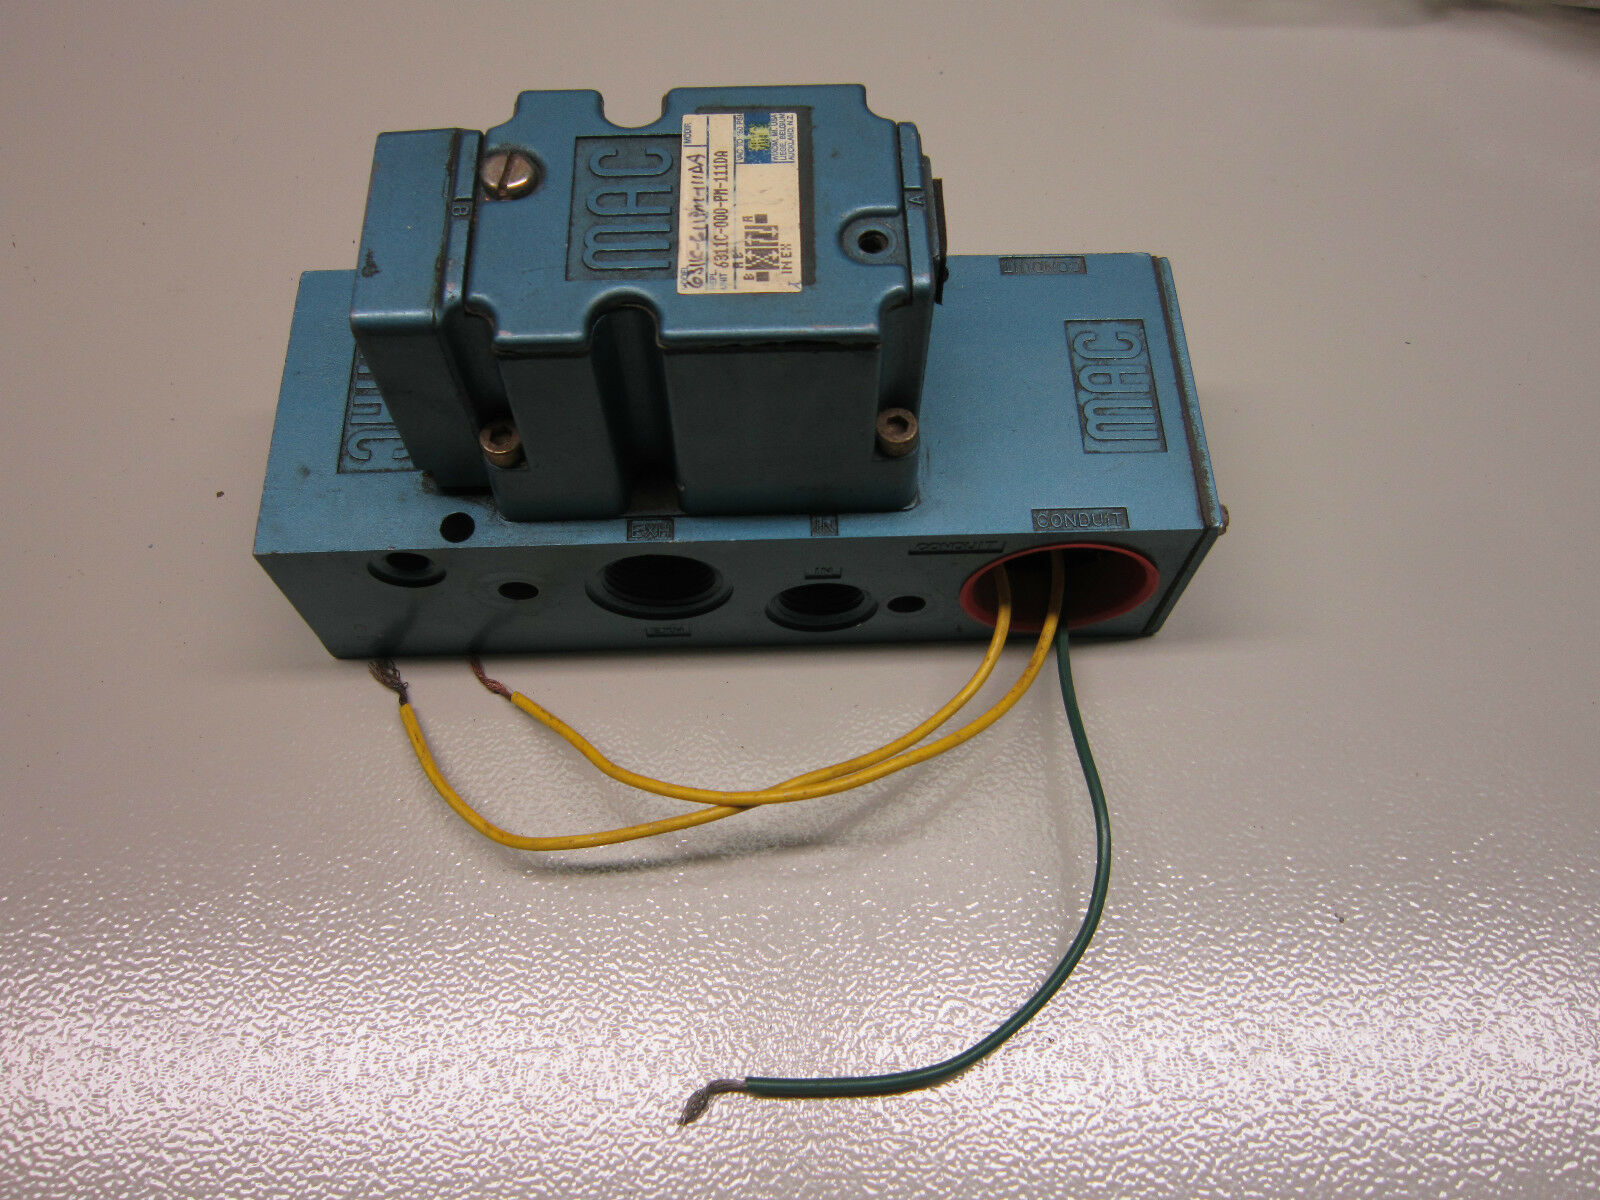 medium resolution of mac valves 6311c 000 pm 111da solenoid valve and manifold used with warranty